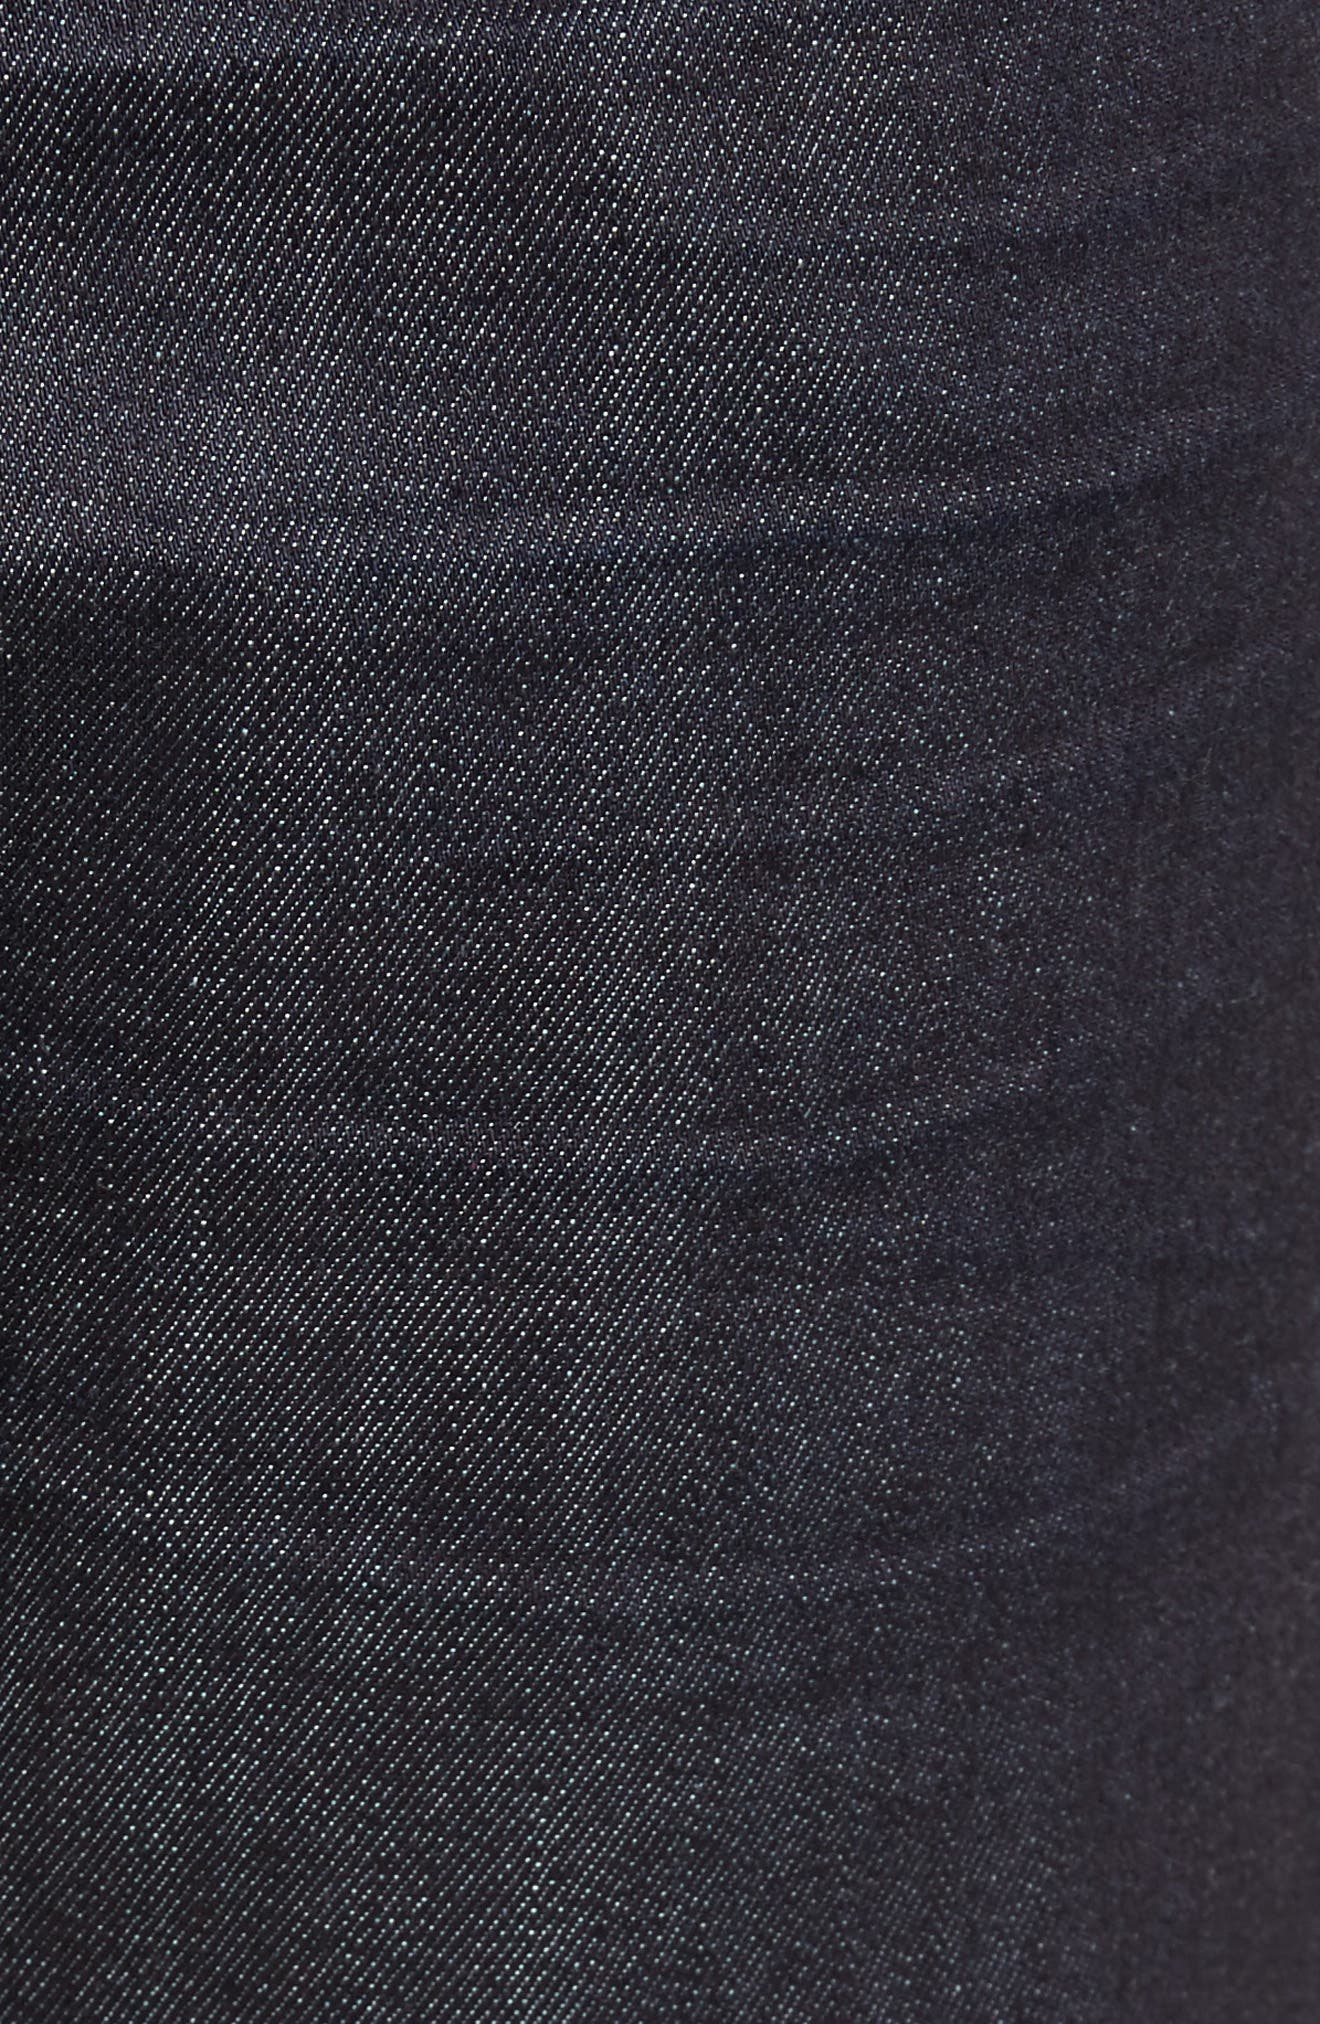 Bowery Slim Fit Jeans,                             Alternate thumbnail 6, color,                             432